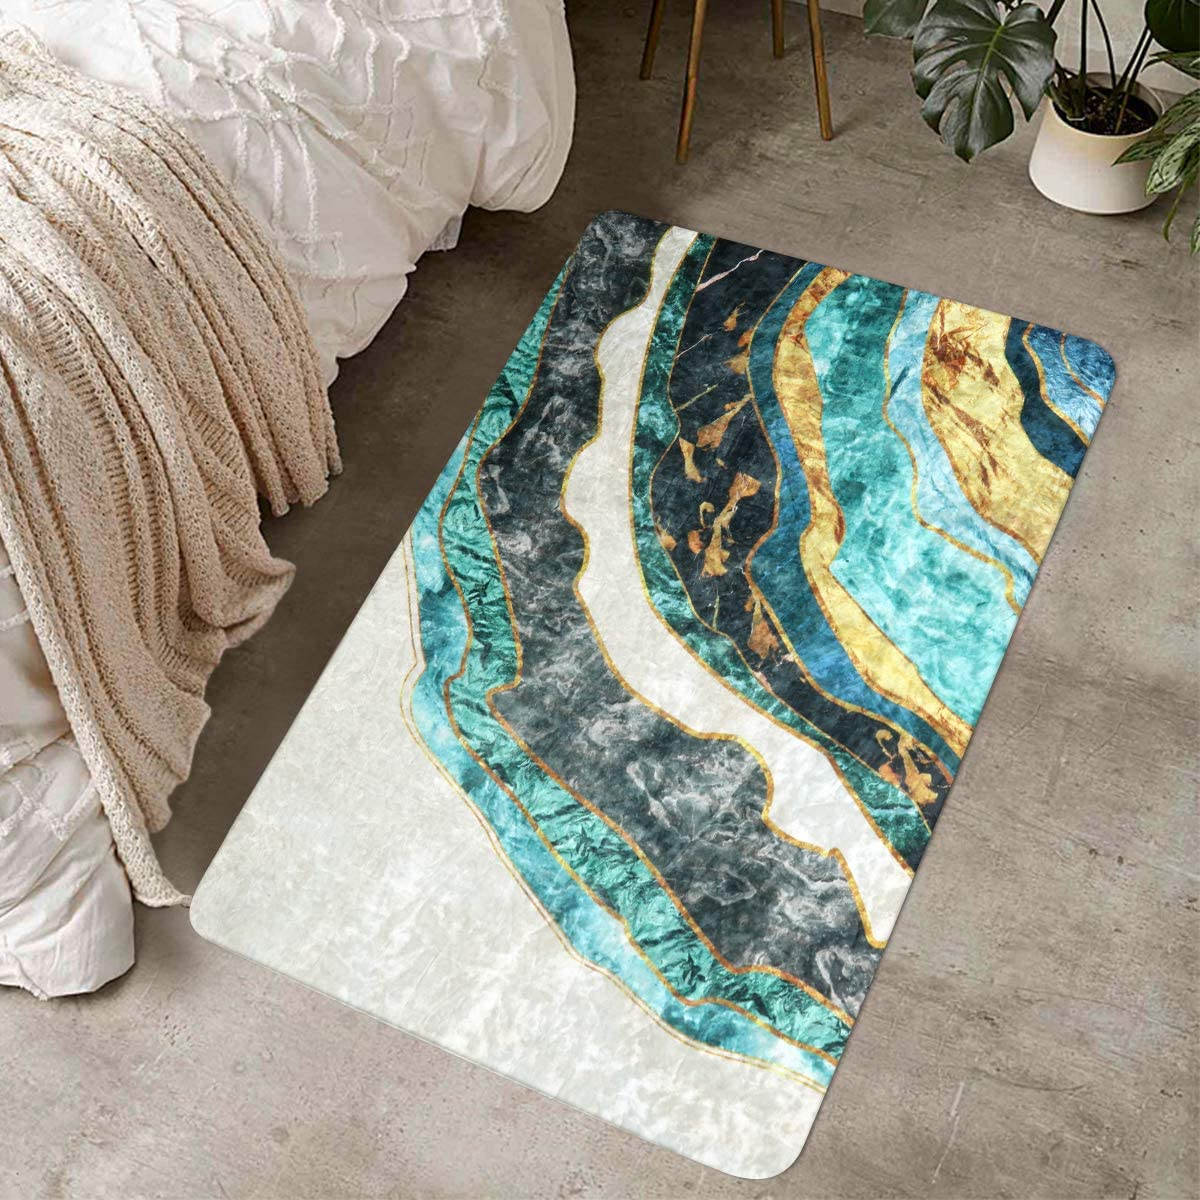 LIVEBOX Modern Abstract Area Rug, 2x3ft Marble Gold and Turquoise Distressed Luxury Faux Wool Rug Plush Contemporary Accent Throw Rug Oriental Door Mat for Entryway Bedroom Living Room Laundry